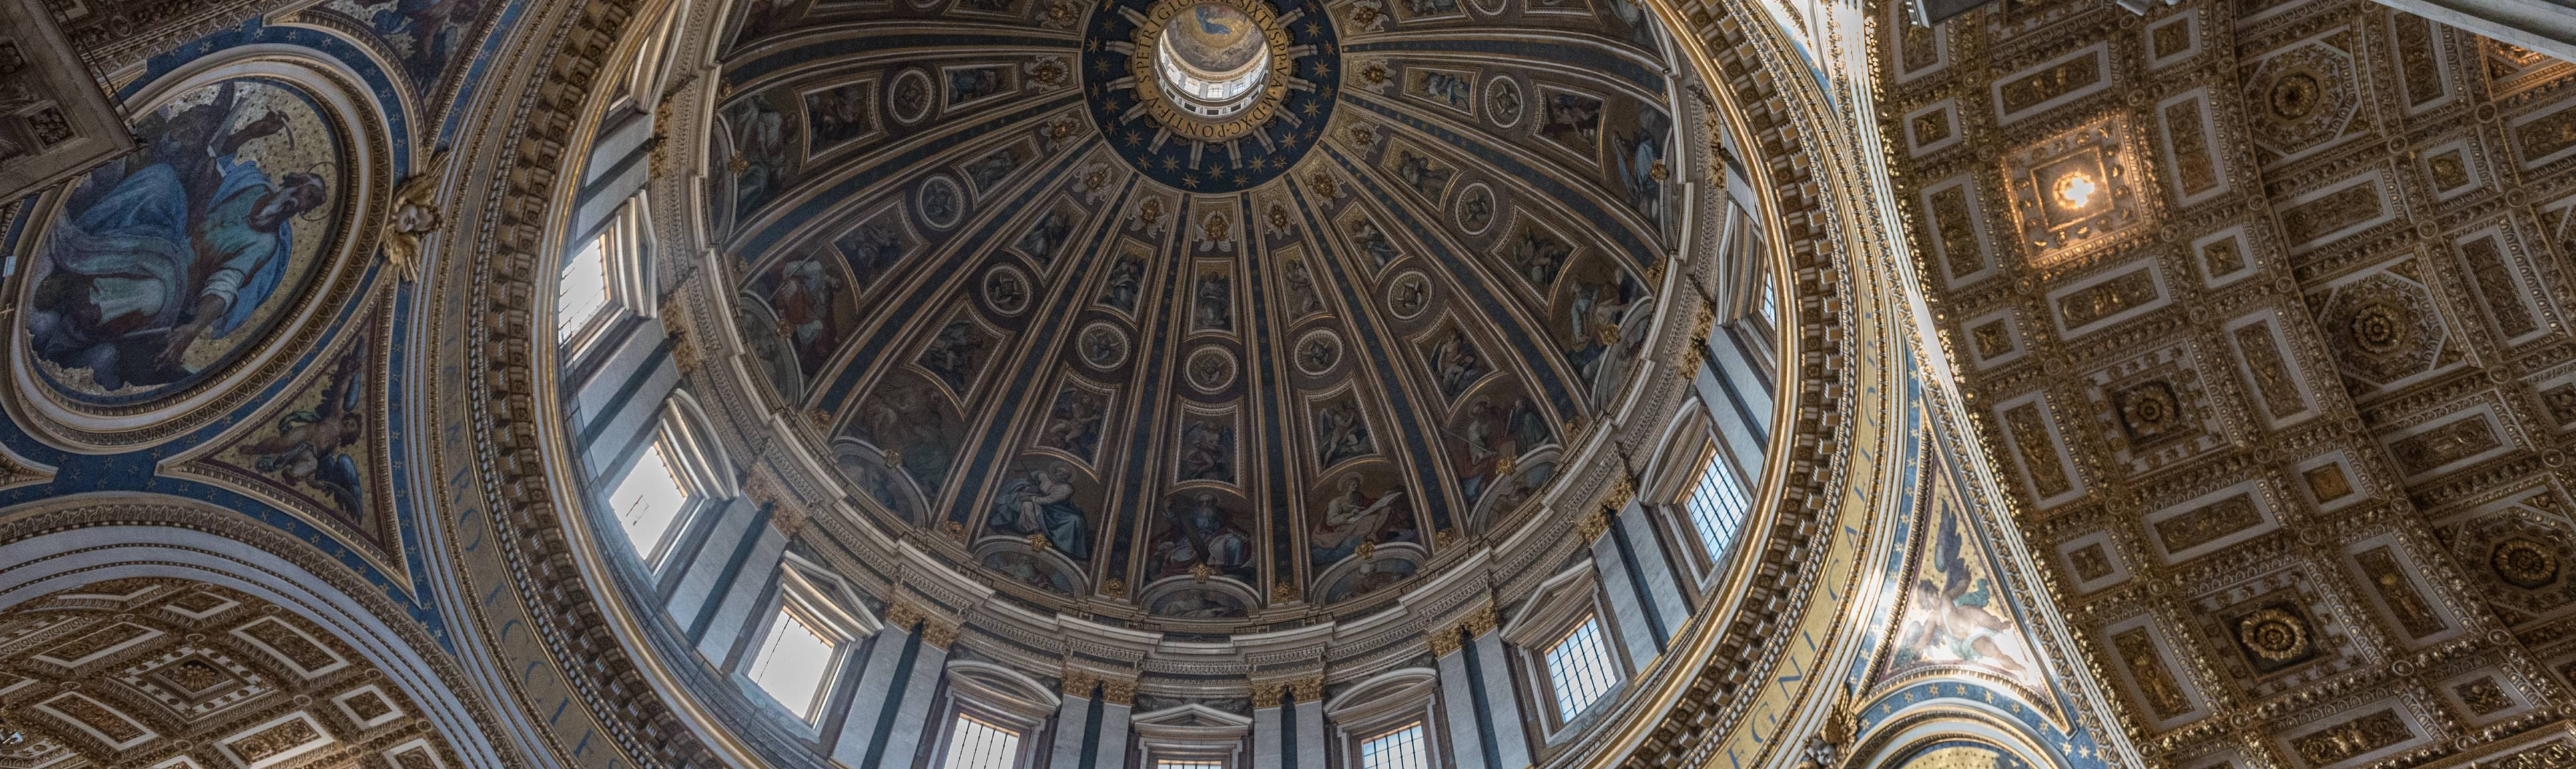 Looking up at the interior apex of St. Peter's Basilica Dome in Rome